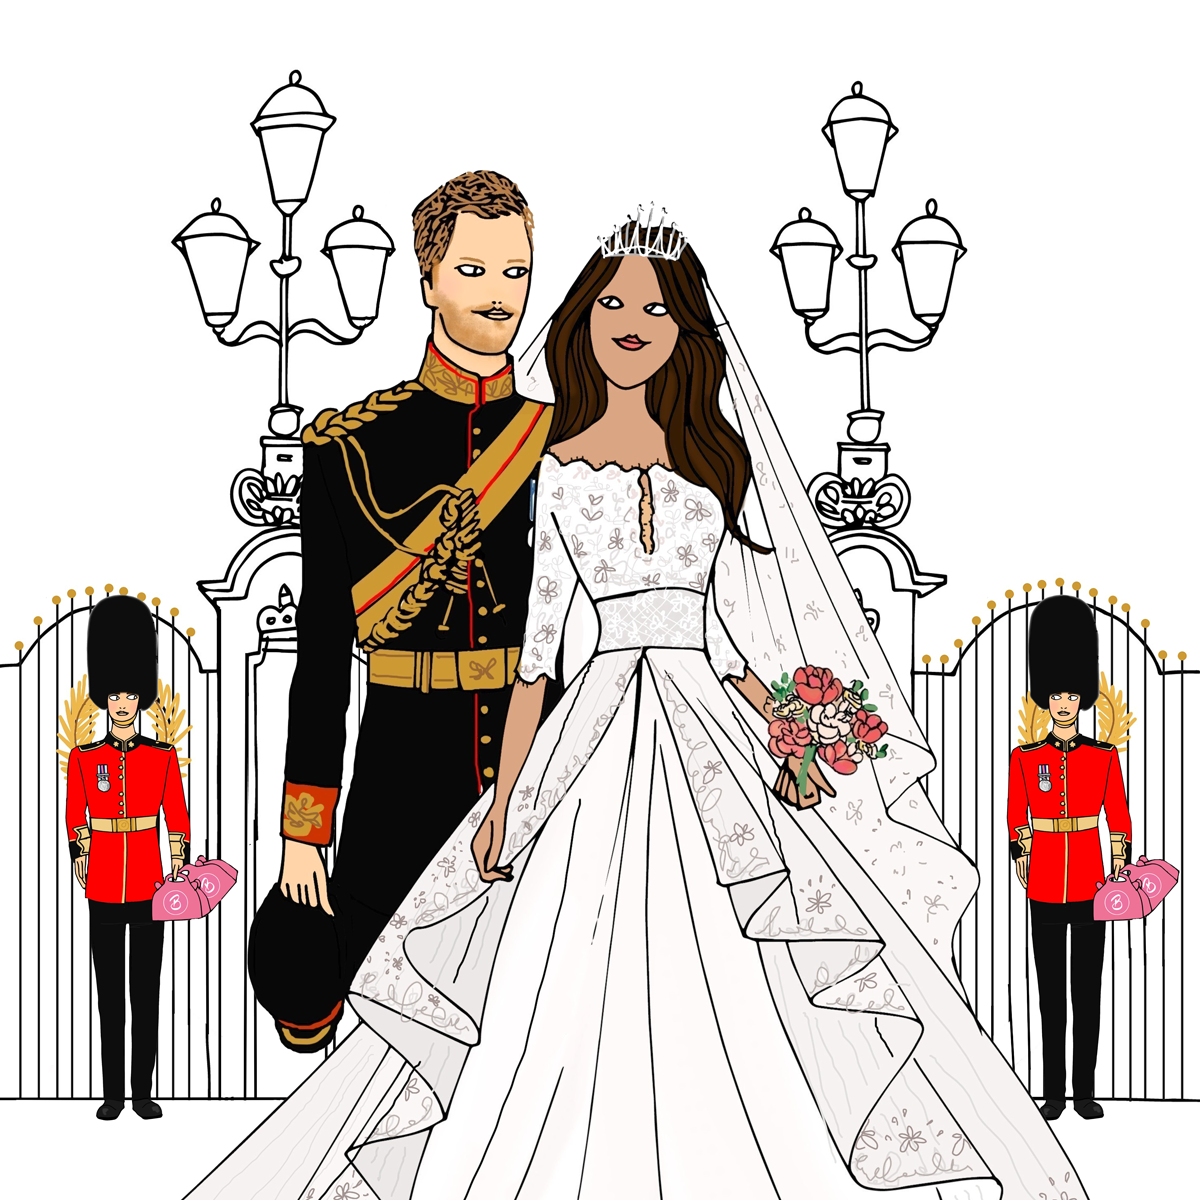 Afternoon Tea etiquette Harry & Meghan Wedding